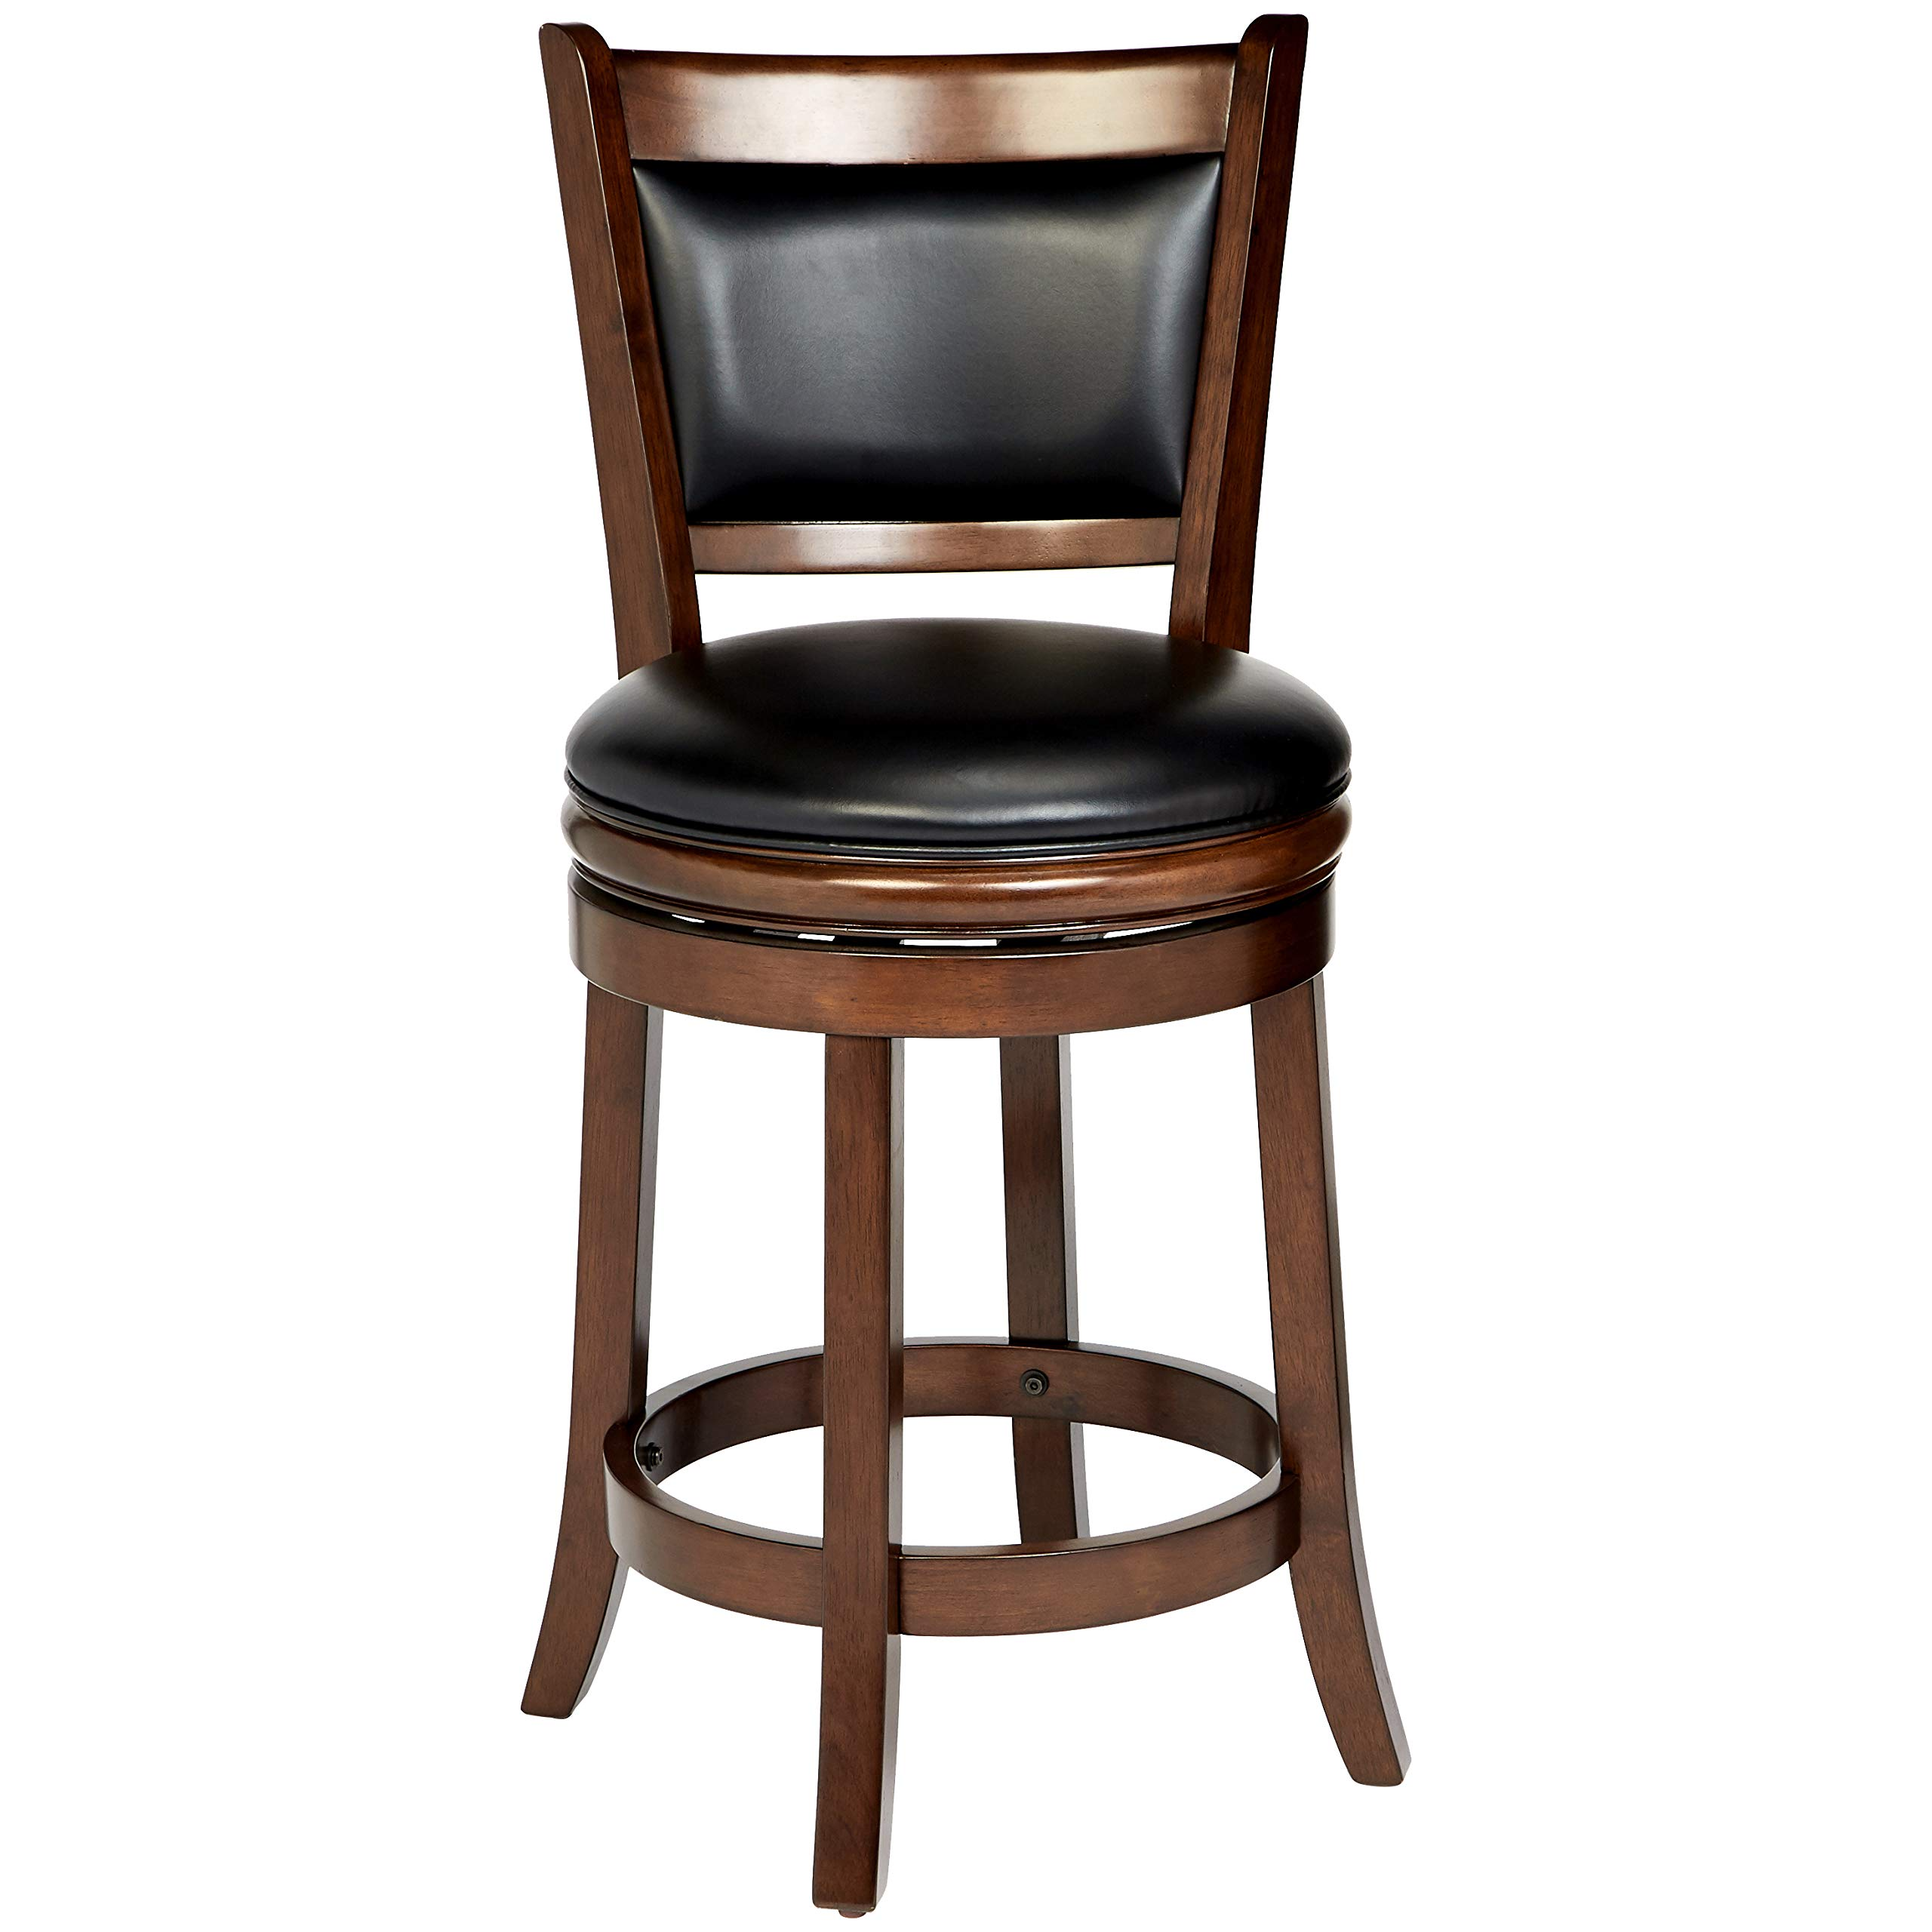 Ball & Cast HSA-1102B-2 Stool, 24'', Cappuccino by Ball & Cast (Image #1)